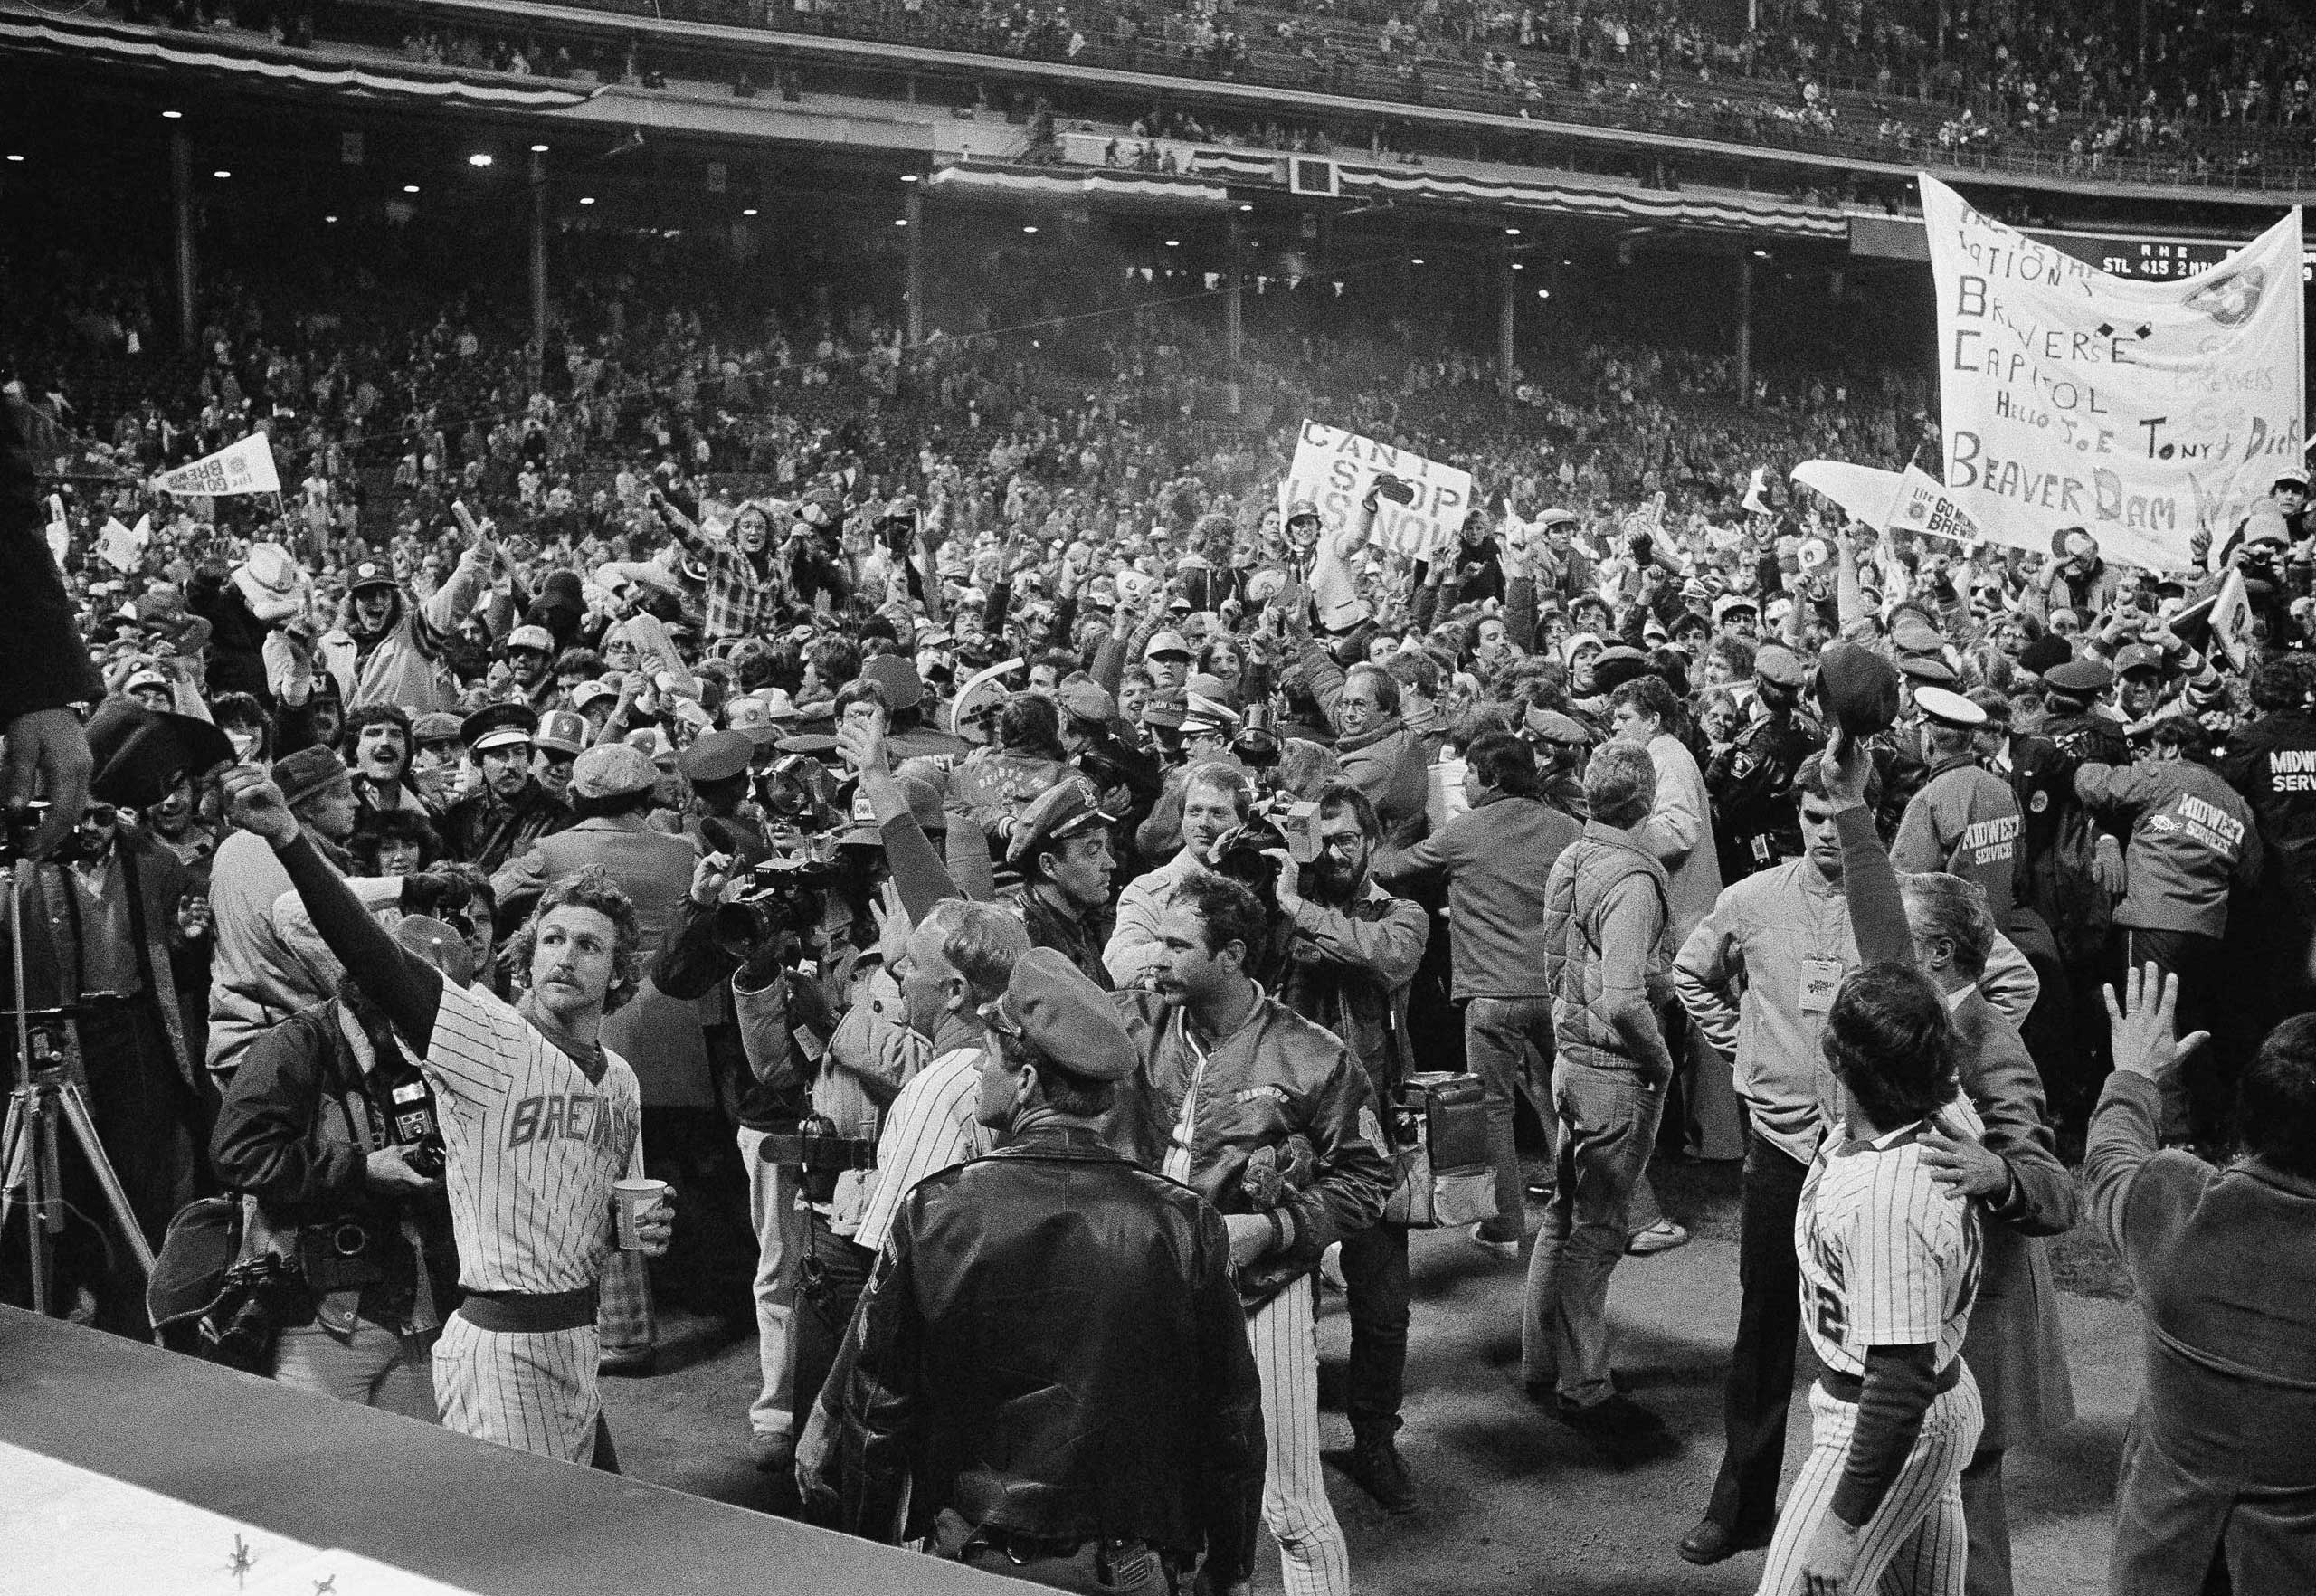 Milwaukee Brewers shortstop Robin Yount, left, waves to the crowd as they celebrate near the dugout in County Stadium after a World Series game, Sunday, Oct. 17, 1982, Milwaukee, Wi.